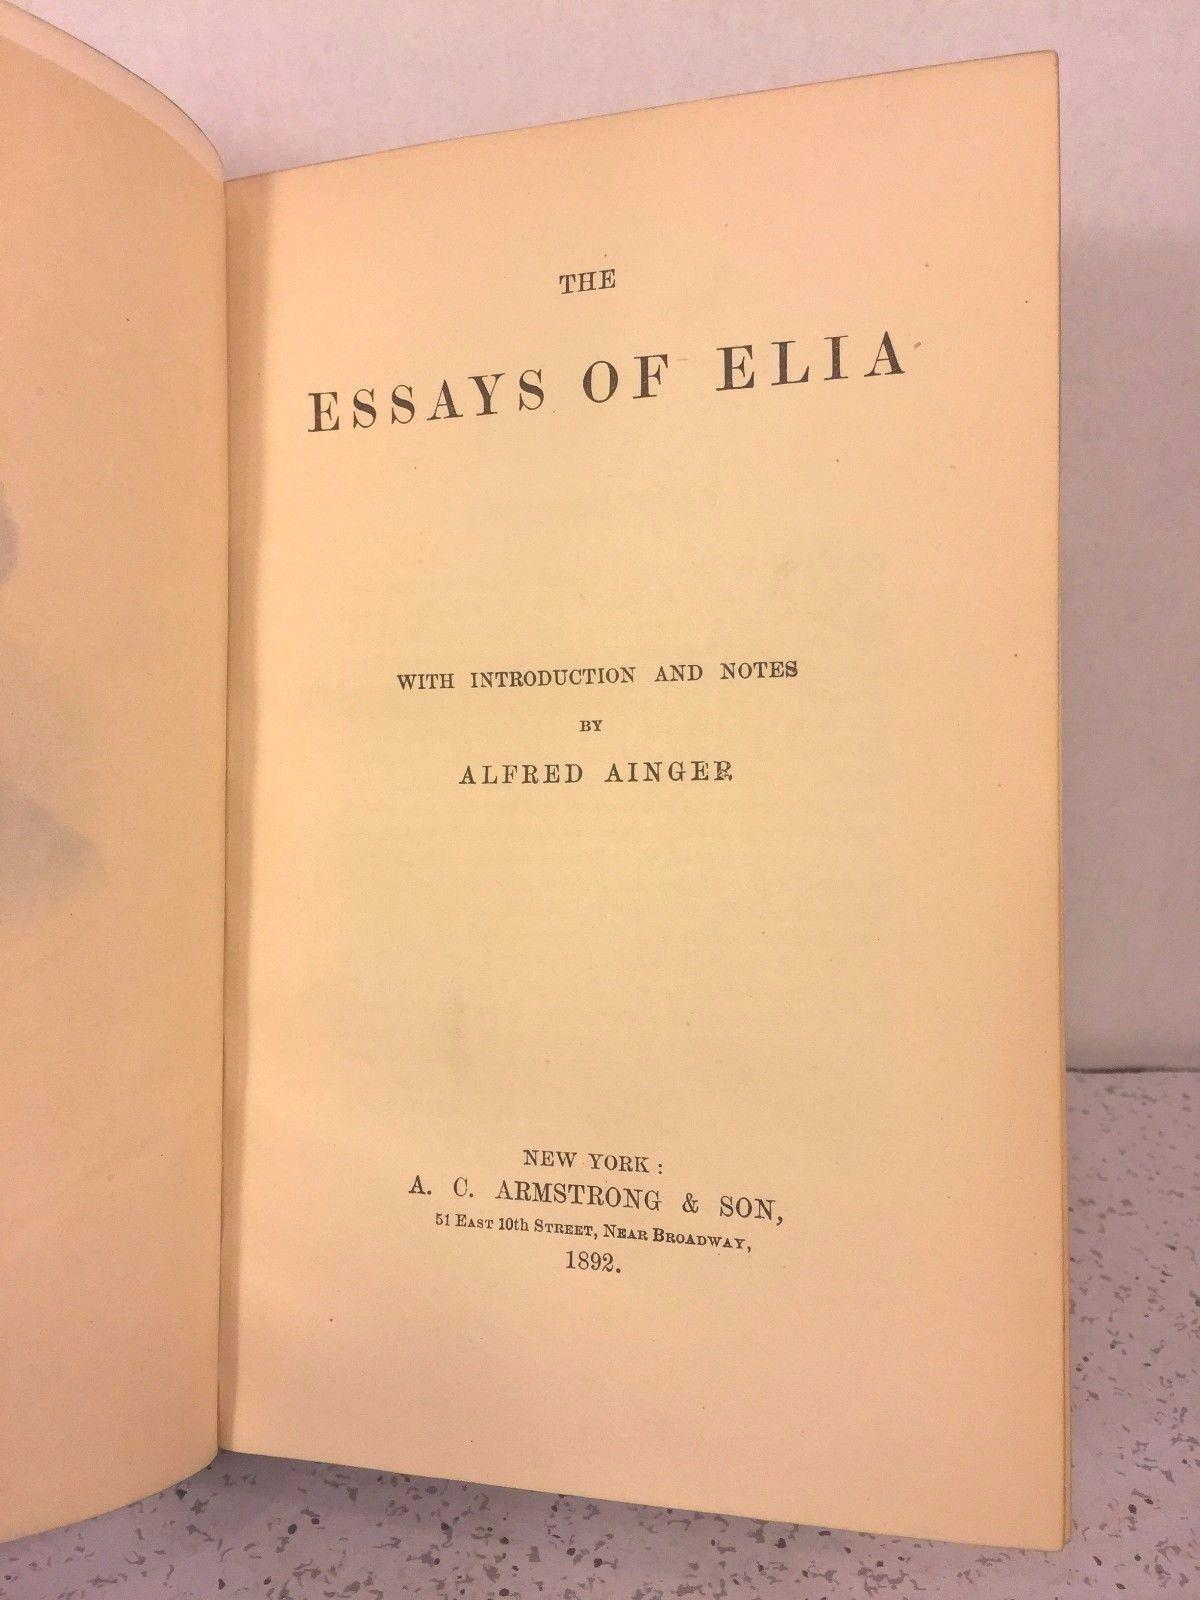 essays elia charles lamb Buy essays of elia by charles lamb (isbn: ) from amazon's book store everyday low prices and free delivery on eligible orders.